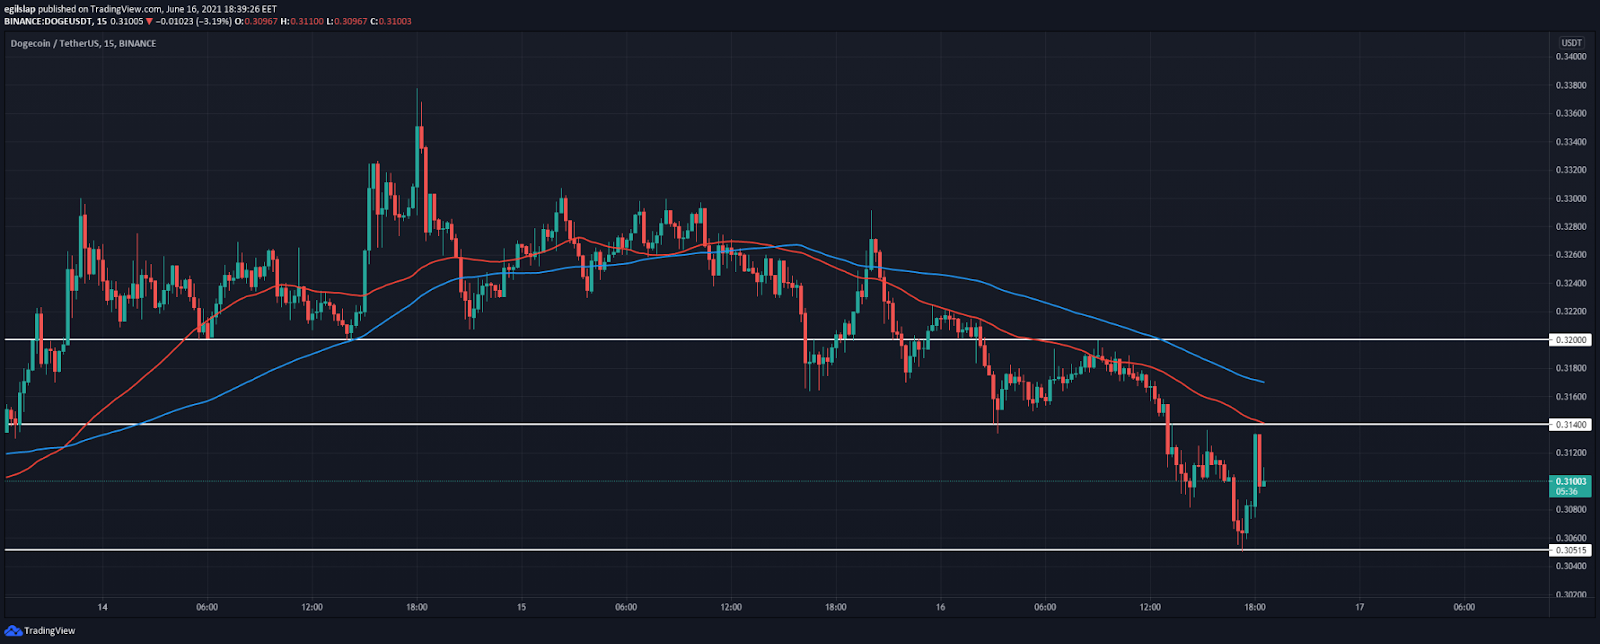 Dogecoin price analysis: Dogecoin continues to consolidate, ready to spike above $0.35 next? 2